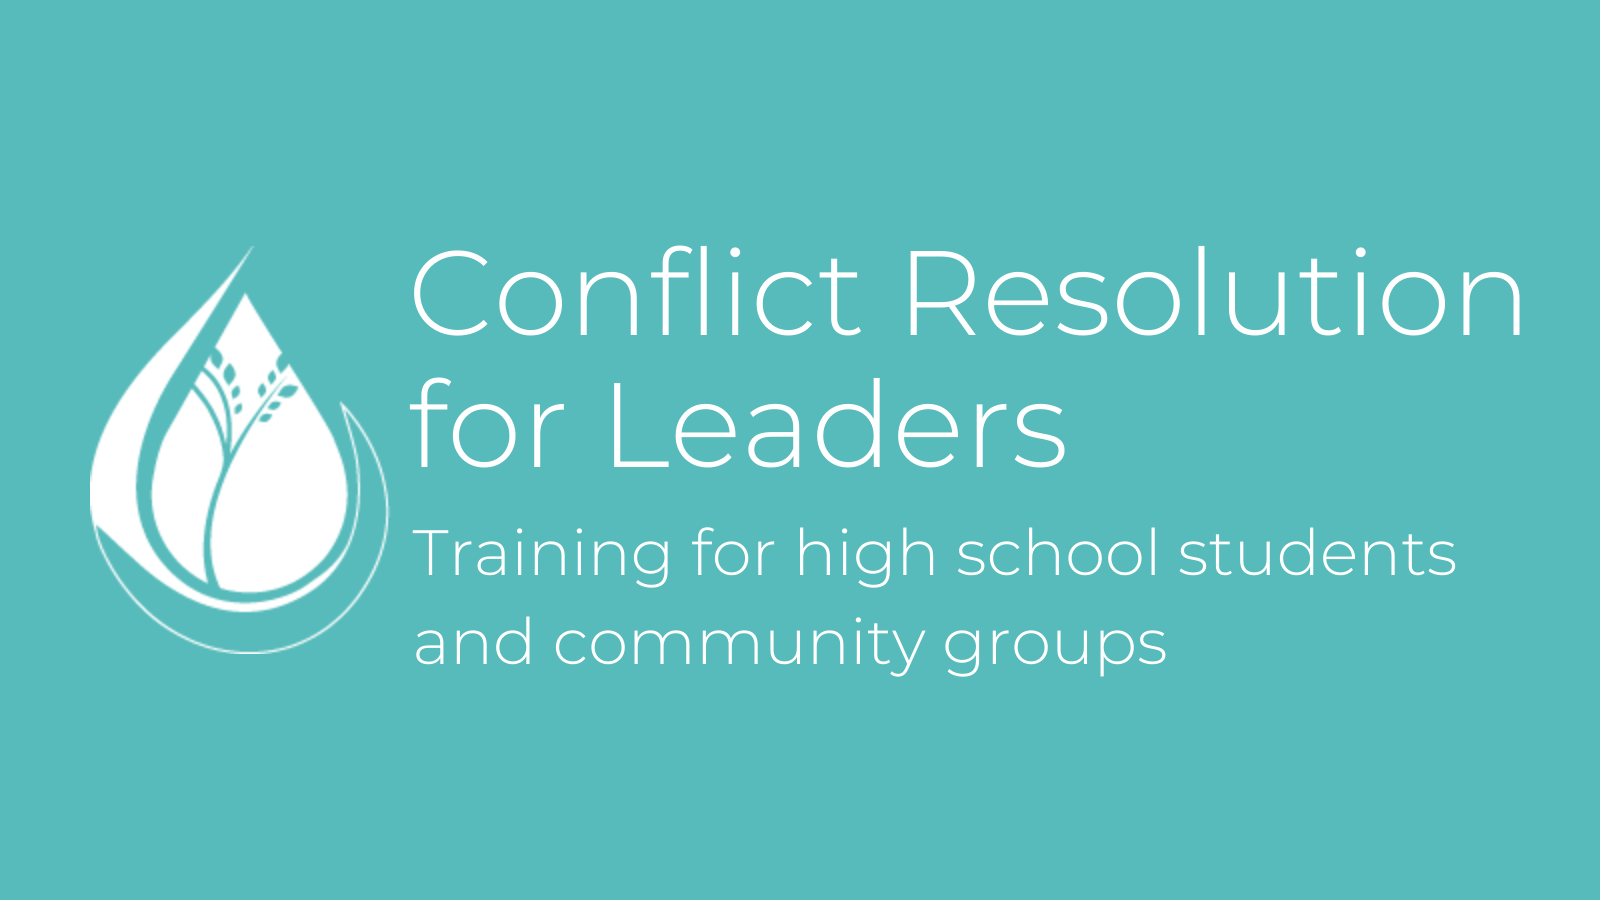 Conflict Resolution for Leaders - Training for high school students and community groups